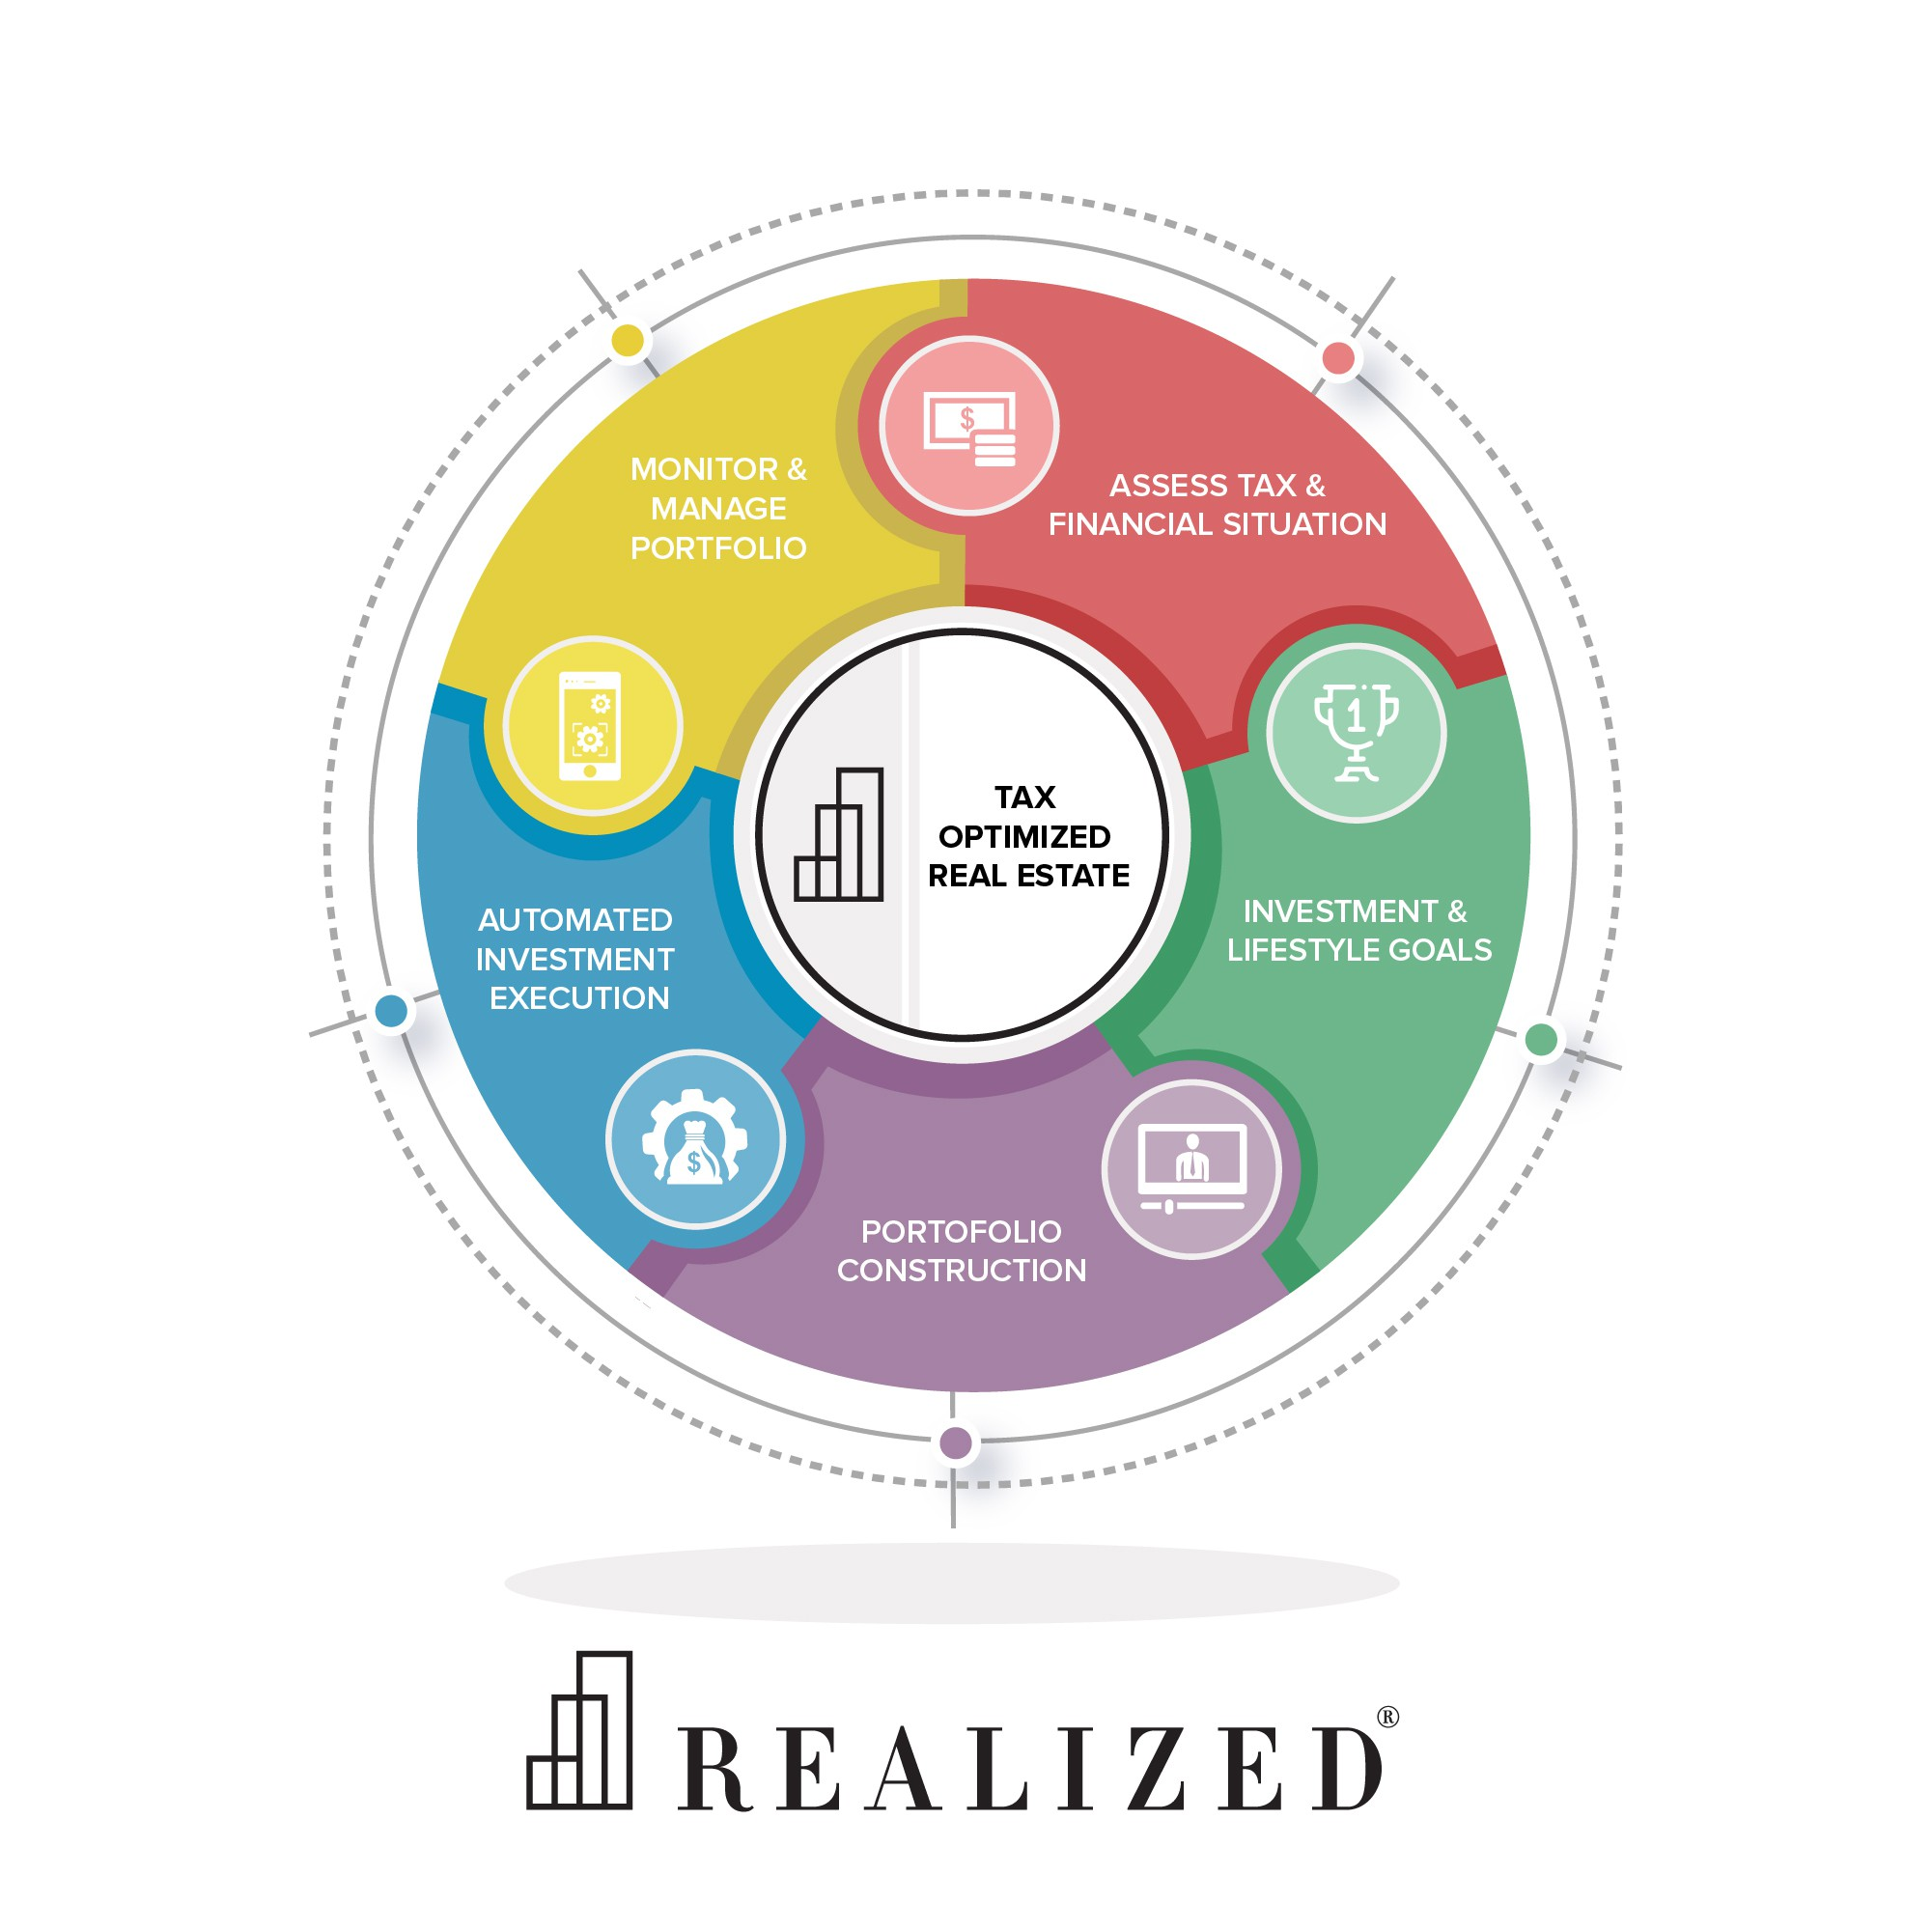 Design A Process Diagram For Realized, A Real Estate Wealth Management Company